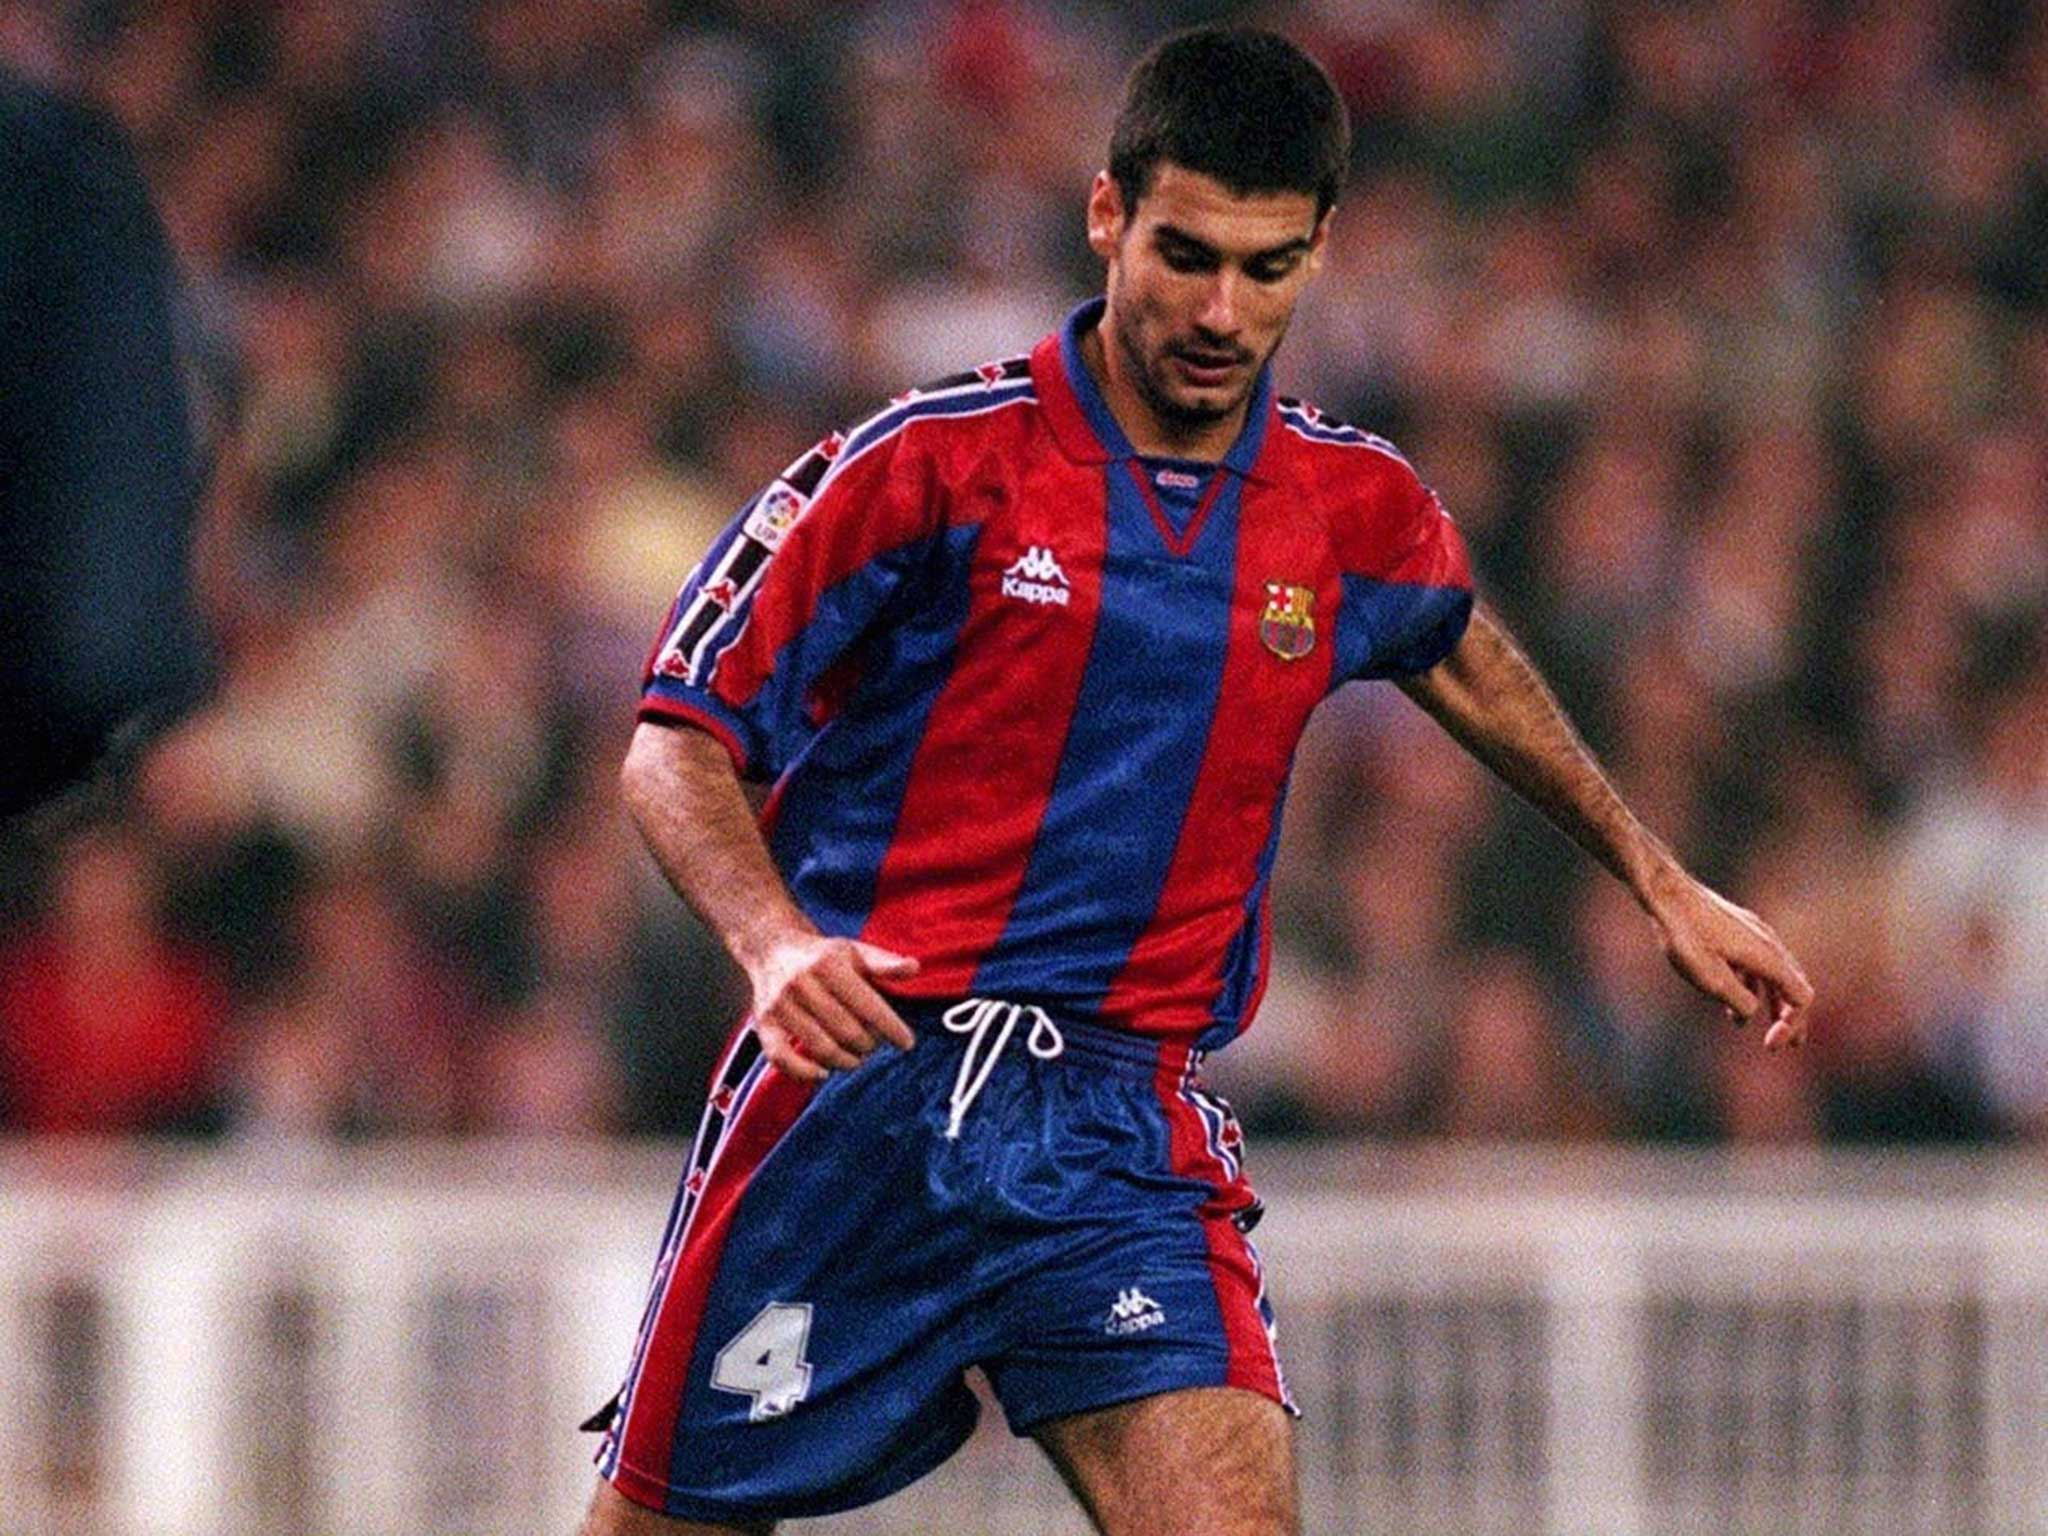 Barcelona Nearly Sold Pep Guardiola Until Johan Cruyff Stepped In To